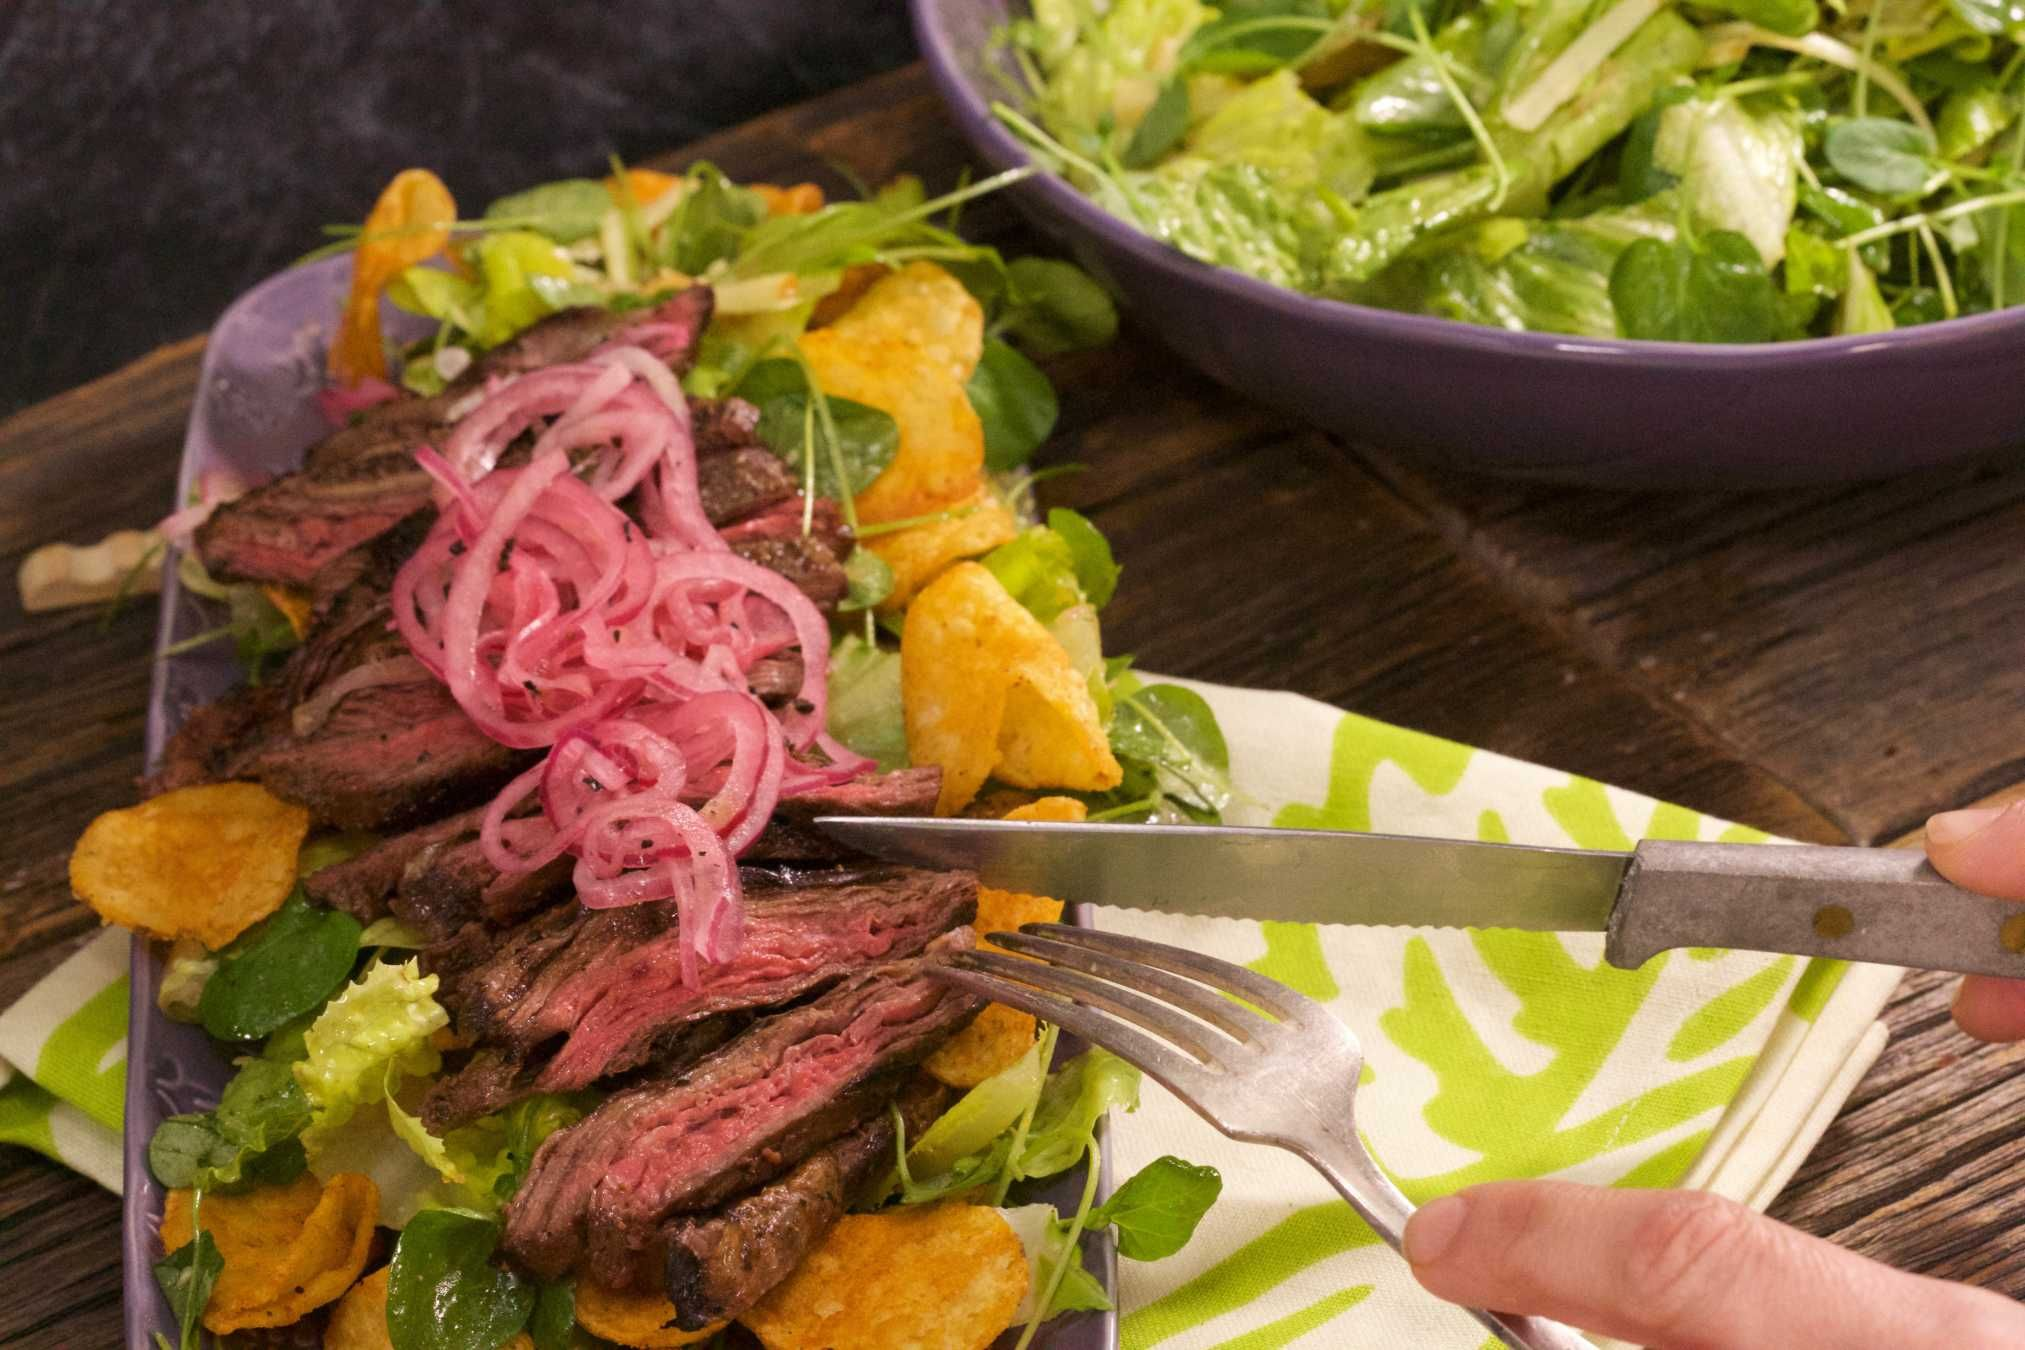 Sliced Steak Salad with Chipotle Vinaigrette and BBQ Chips.